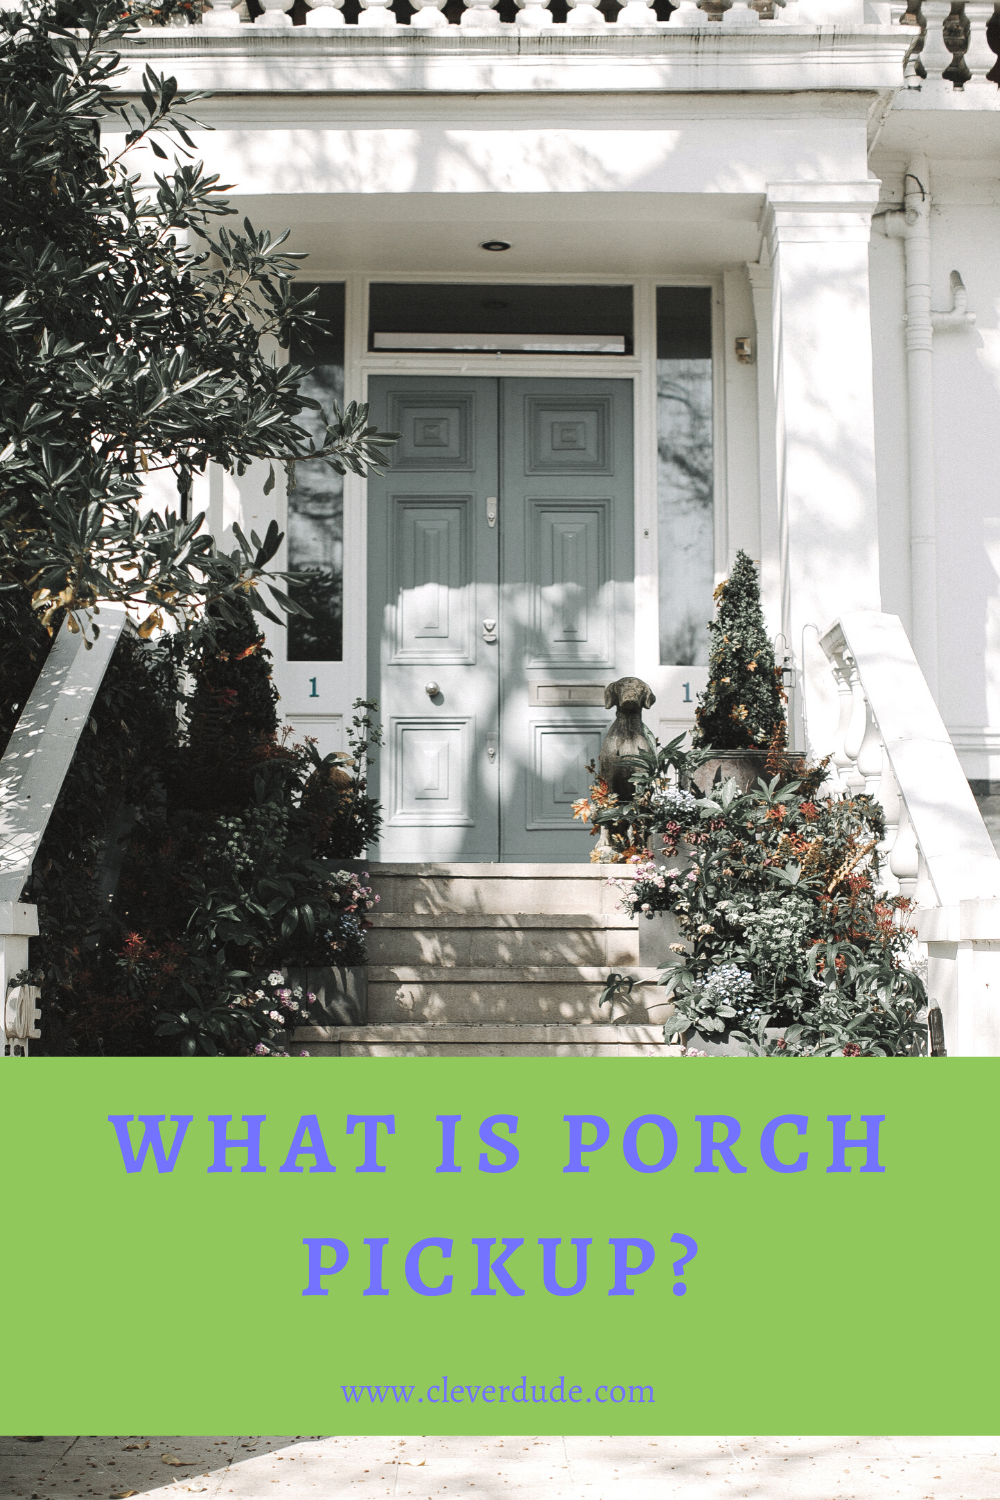 What is Porch Pickup